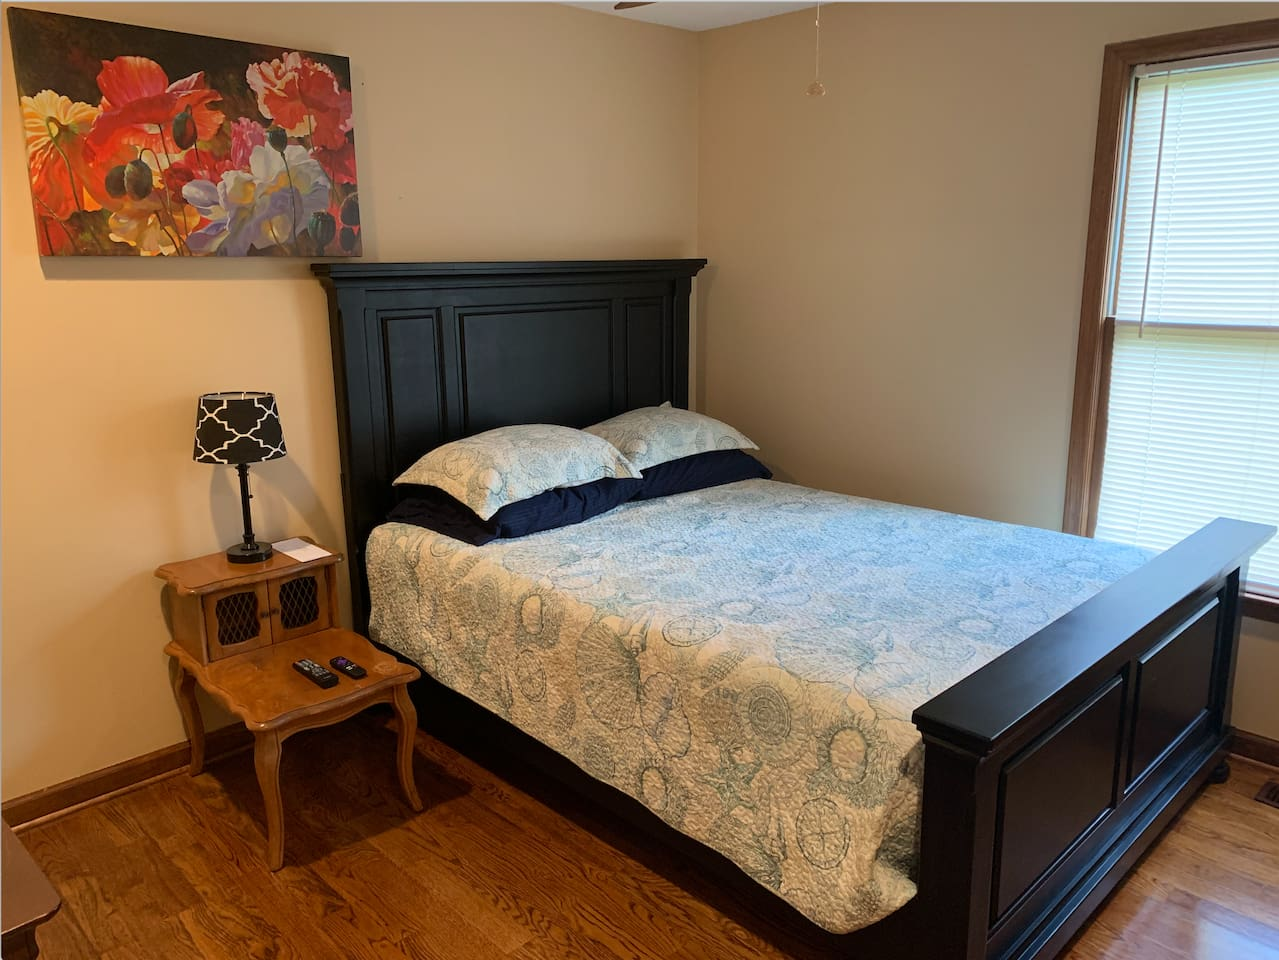 Spacious queen size bed in a bright room.